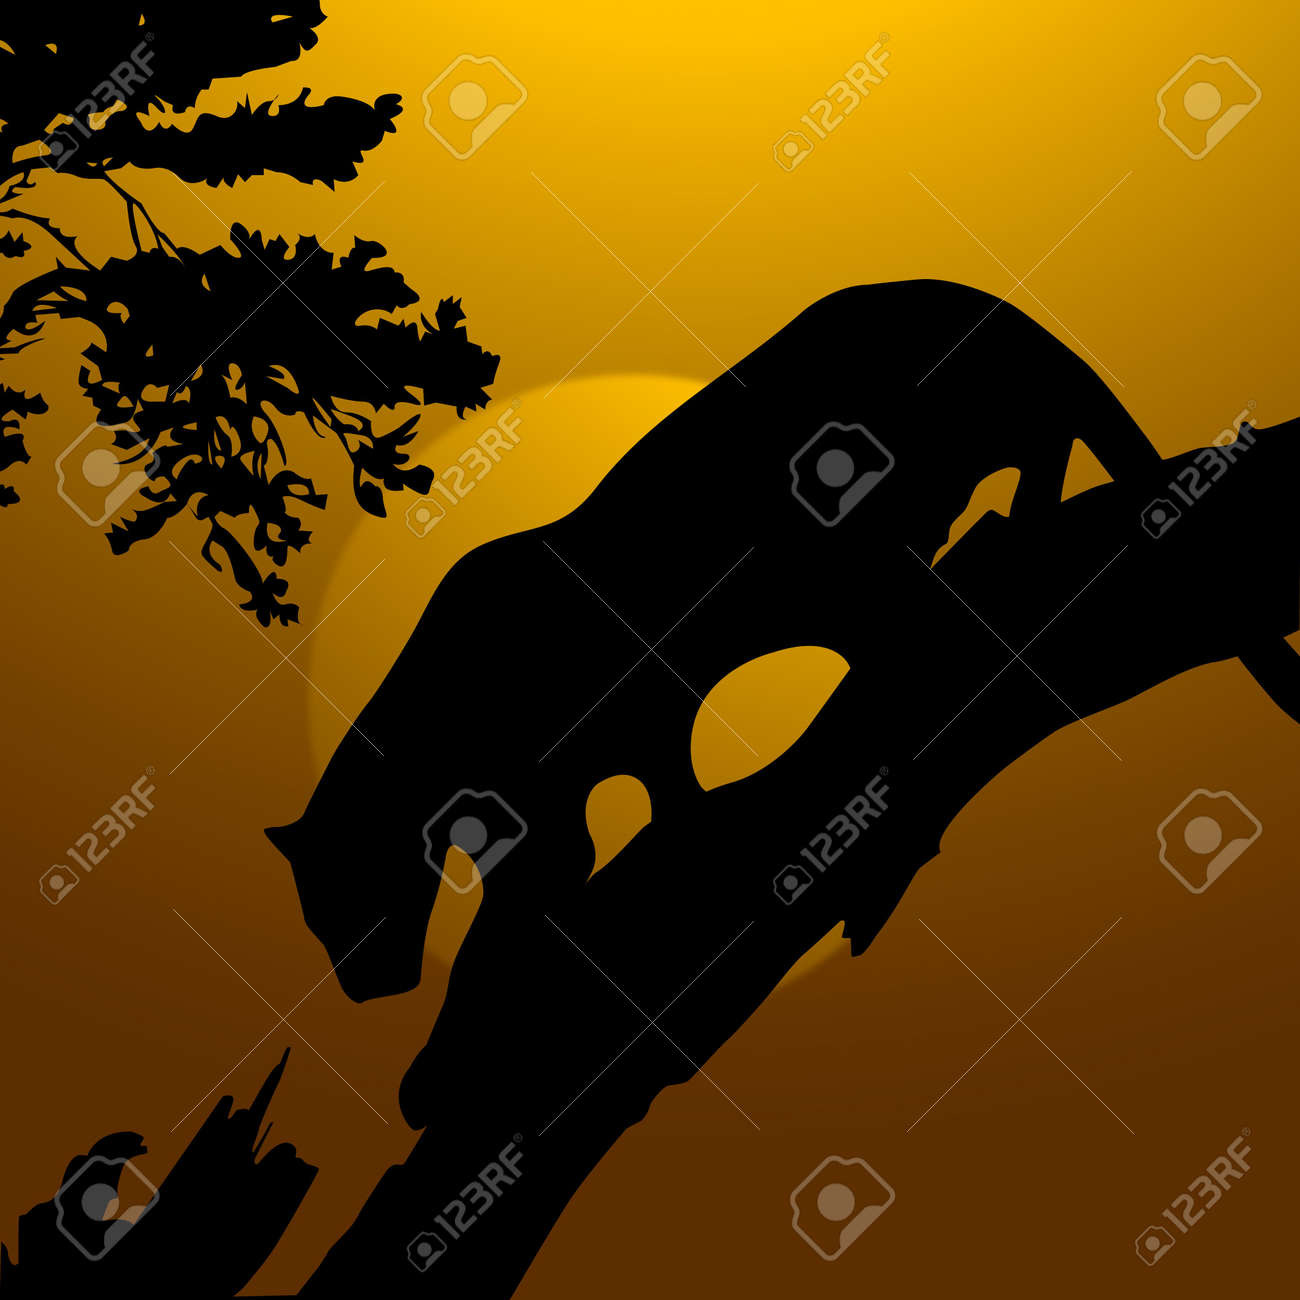 Wildlife Stock Photography Stock Photo silhouette view